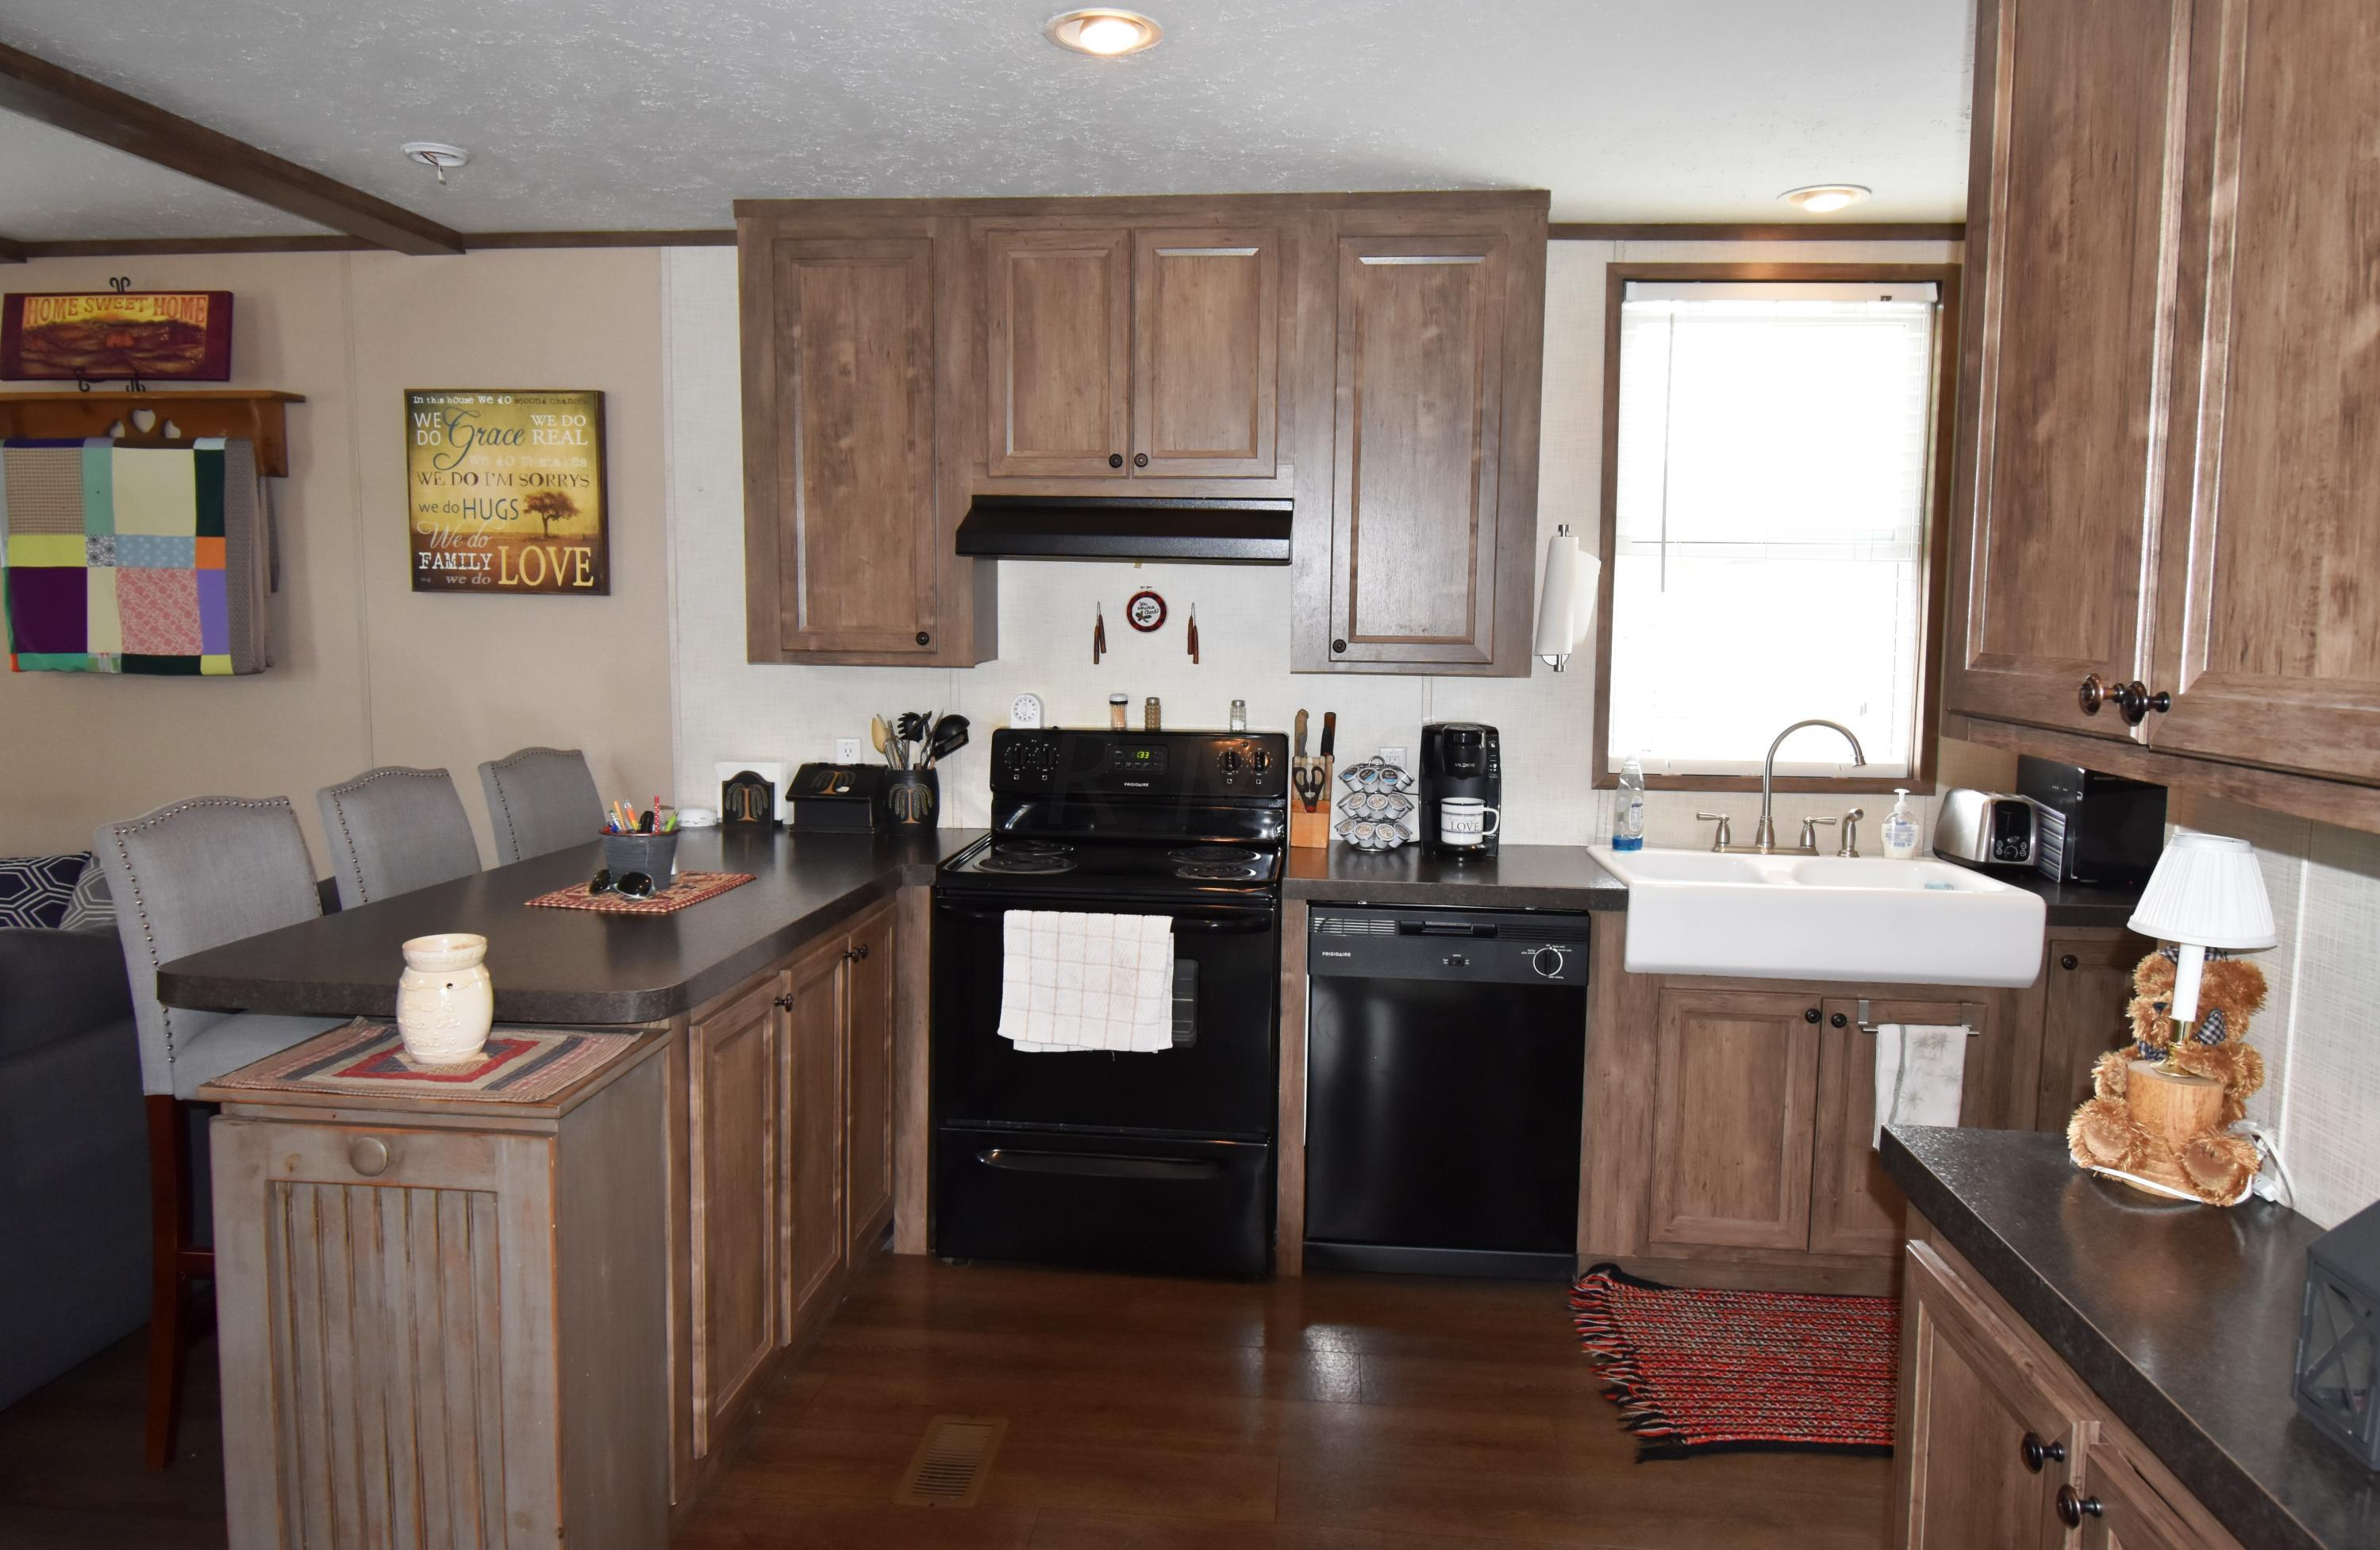 902 State Route 61, Marengo, Ohio 43334, 3 Bedrooms Bedrooms, ,2 BathroomsBathrooms,Residential,For Sale,State Route 61,220018871